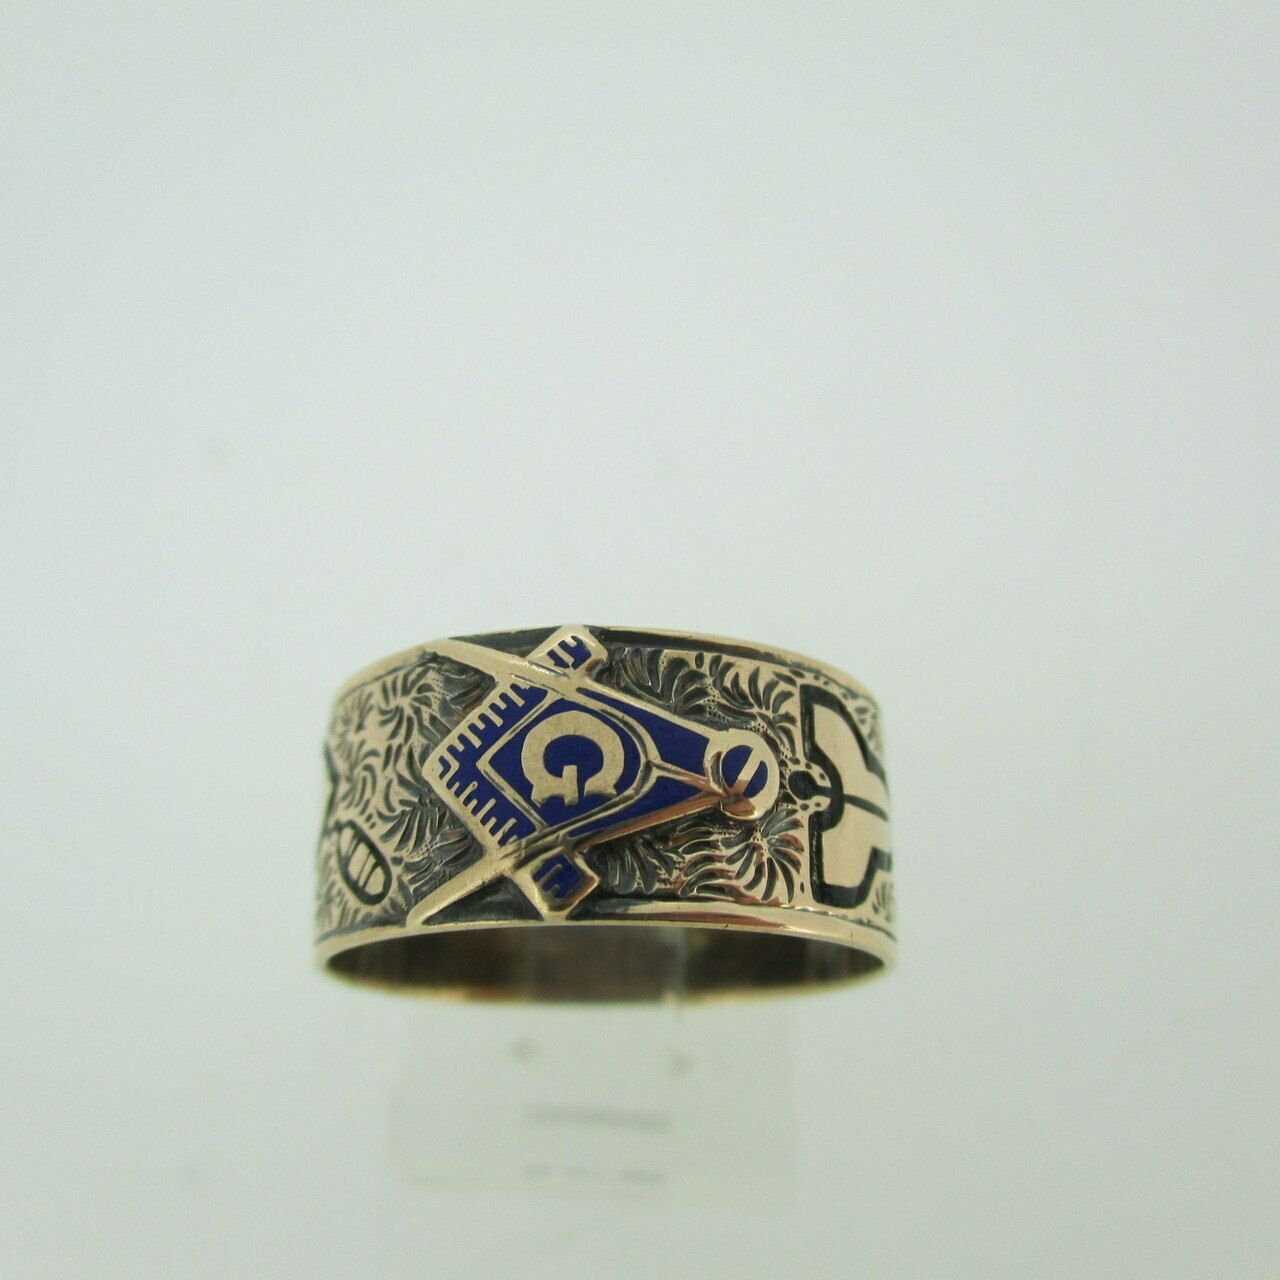 CA 1900s Vintage 14k pink gold Masonic bluee Lodge Ring Size 8 1 2